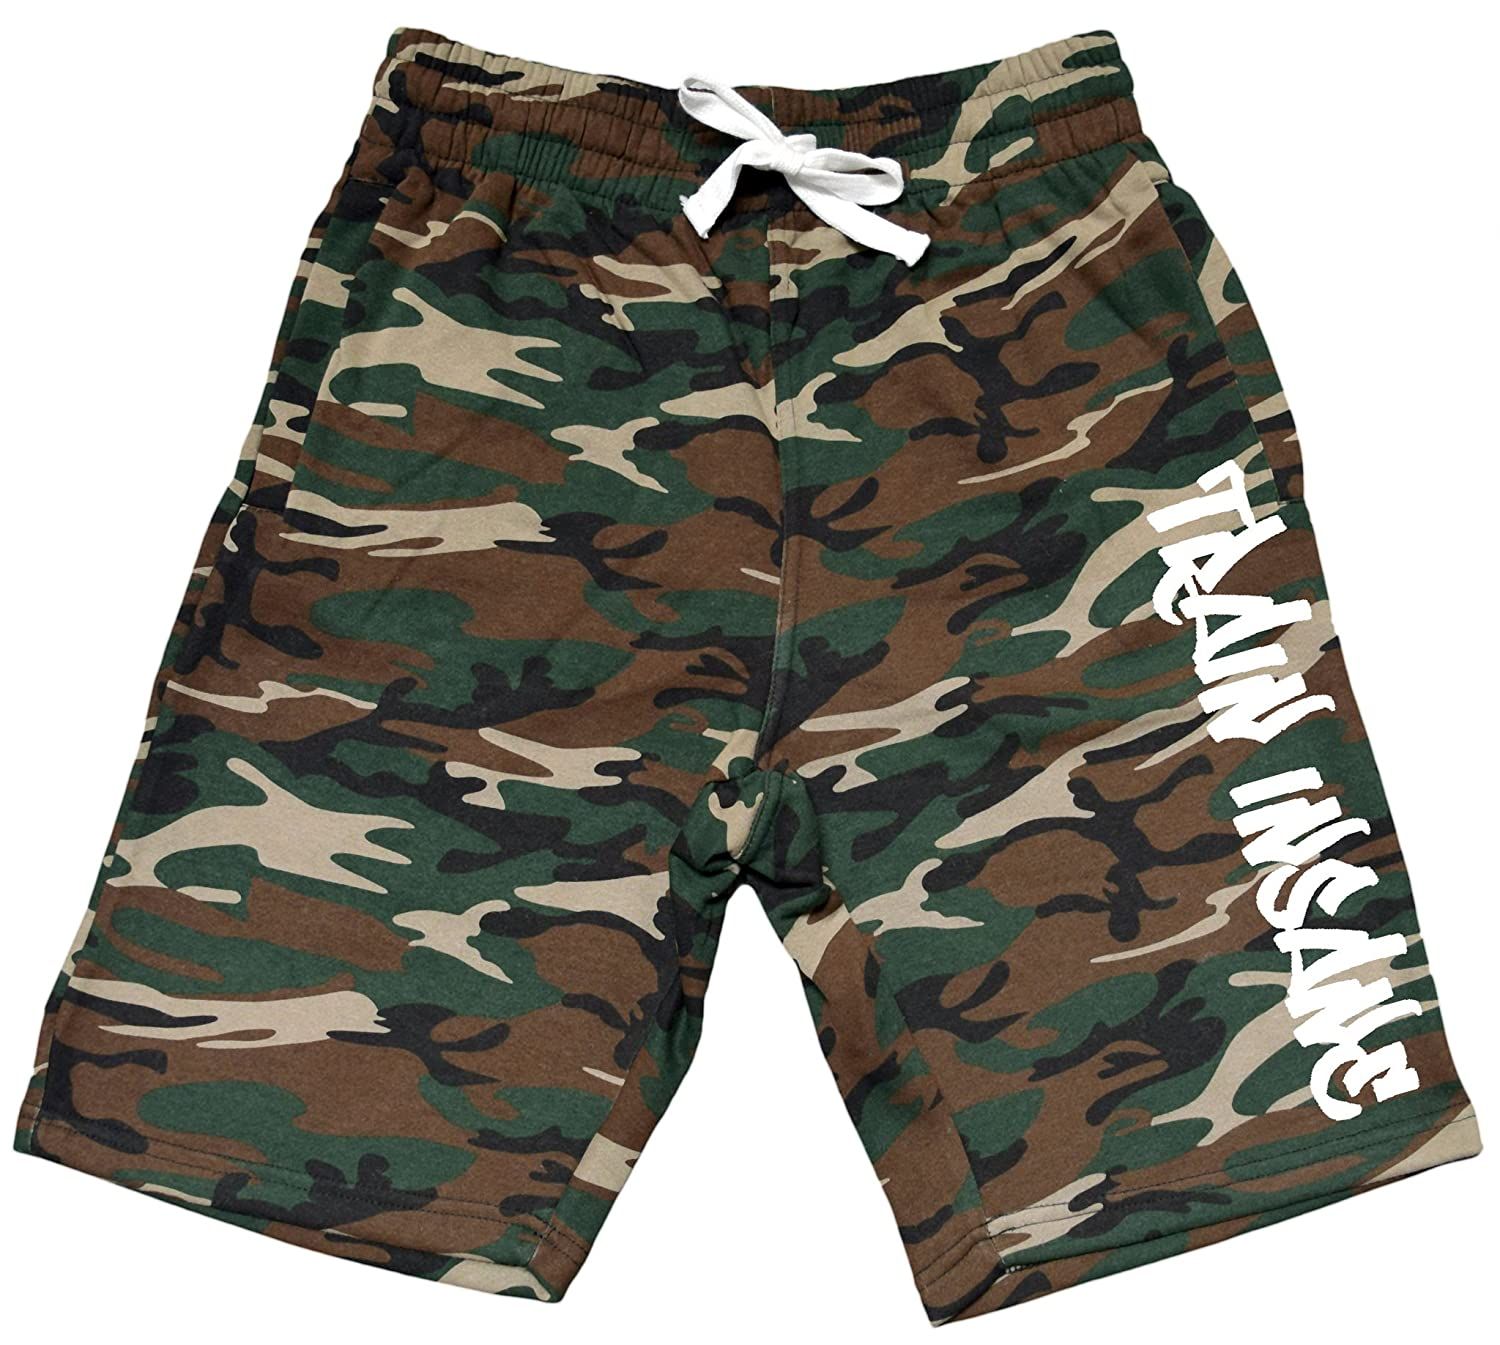 Interstate Apparel Mens Graffiti Train Insane V191 Camo Fleece Jogger Sweatpant Gym Shorts